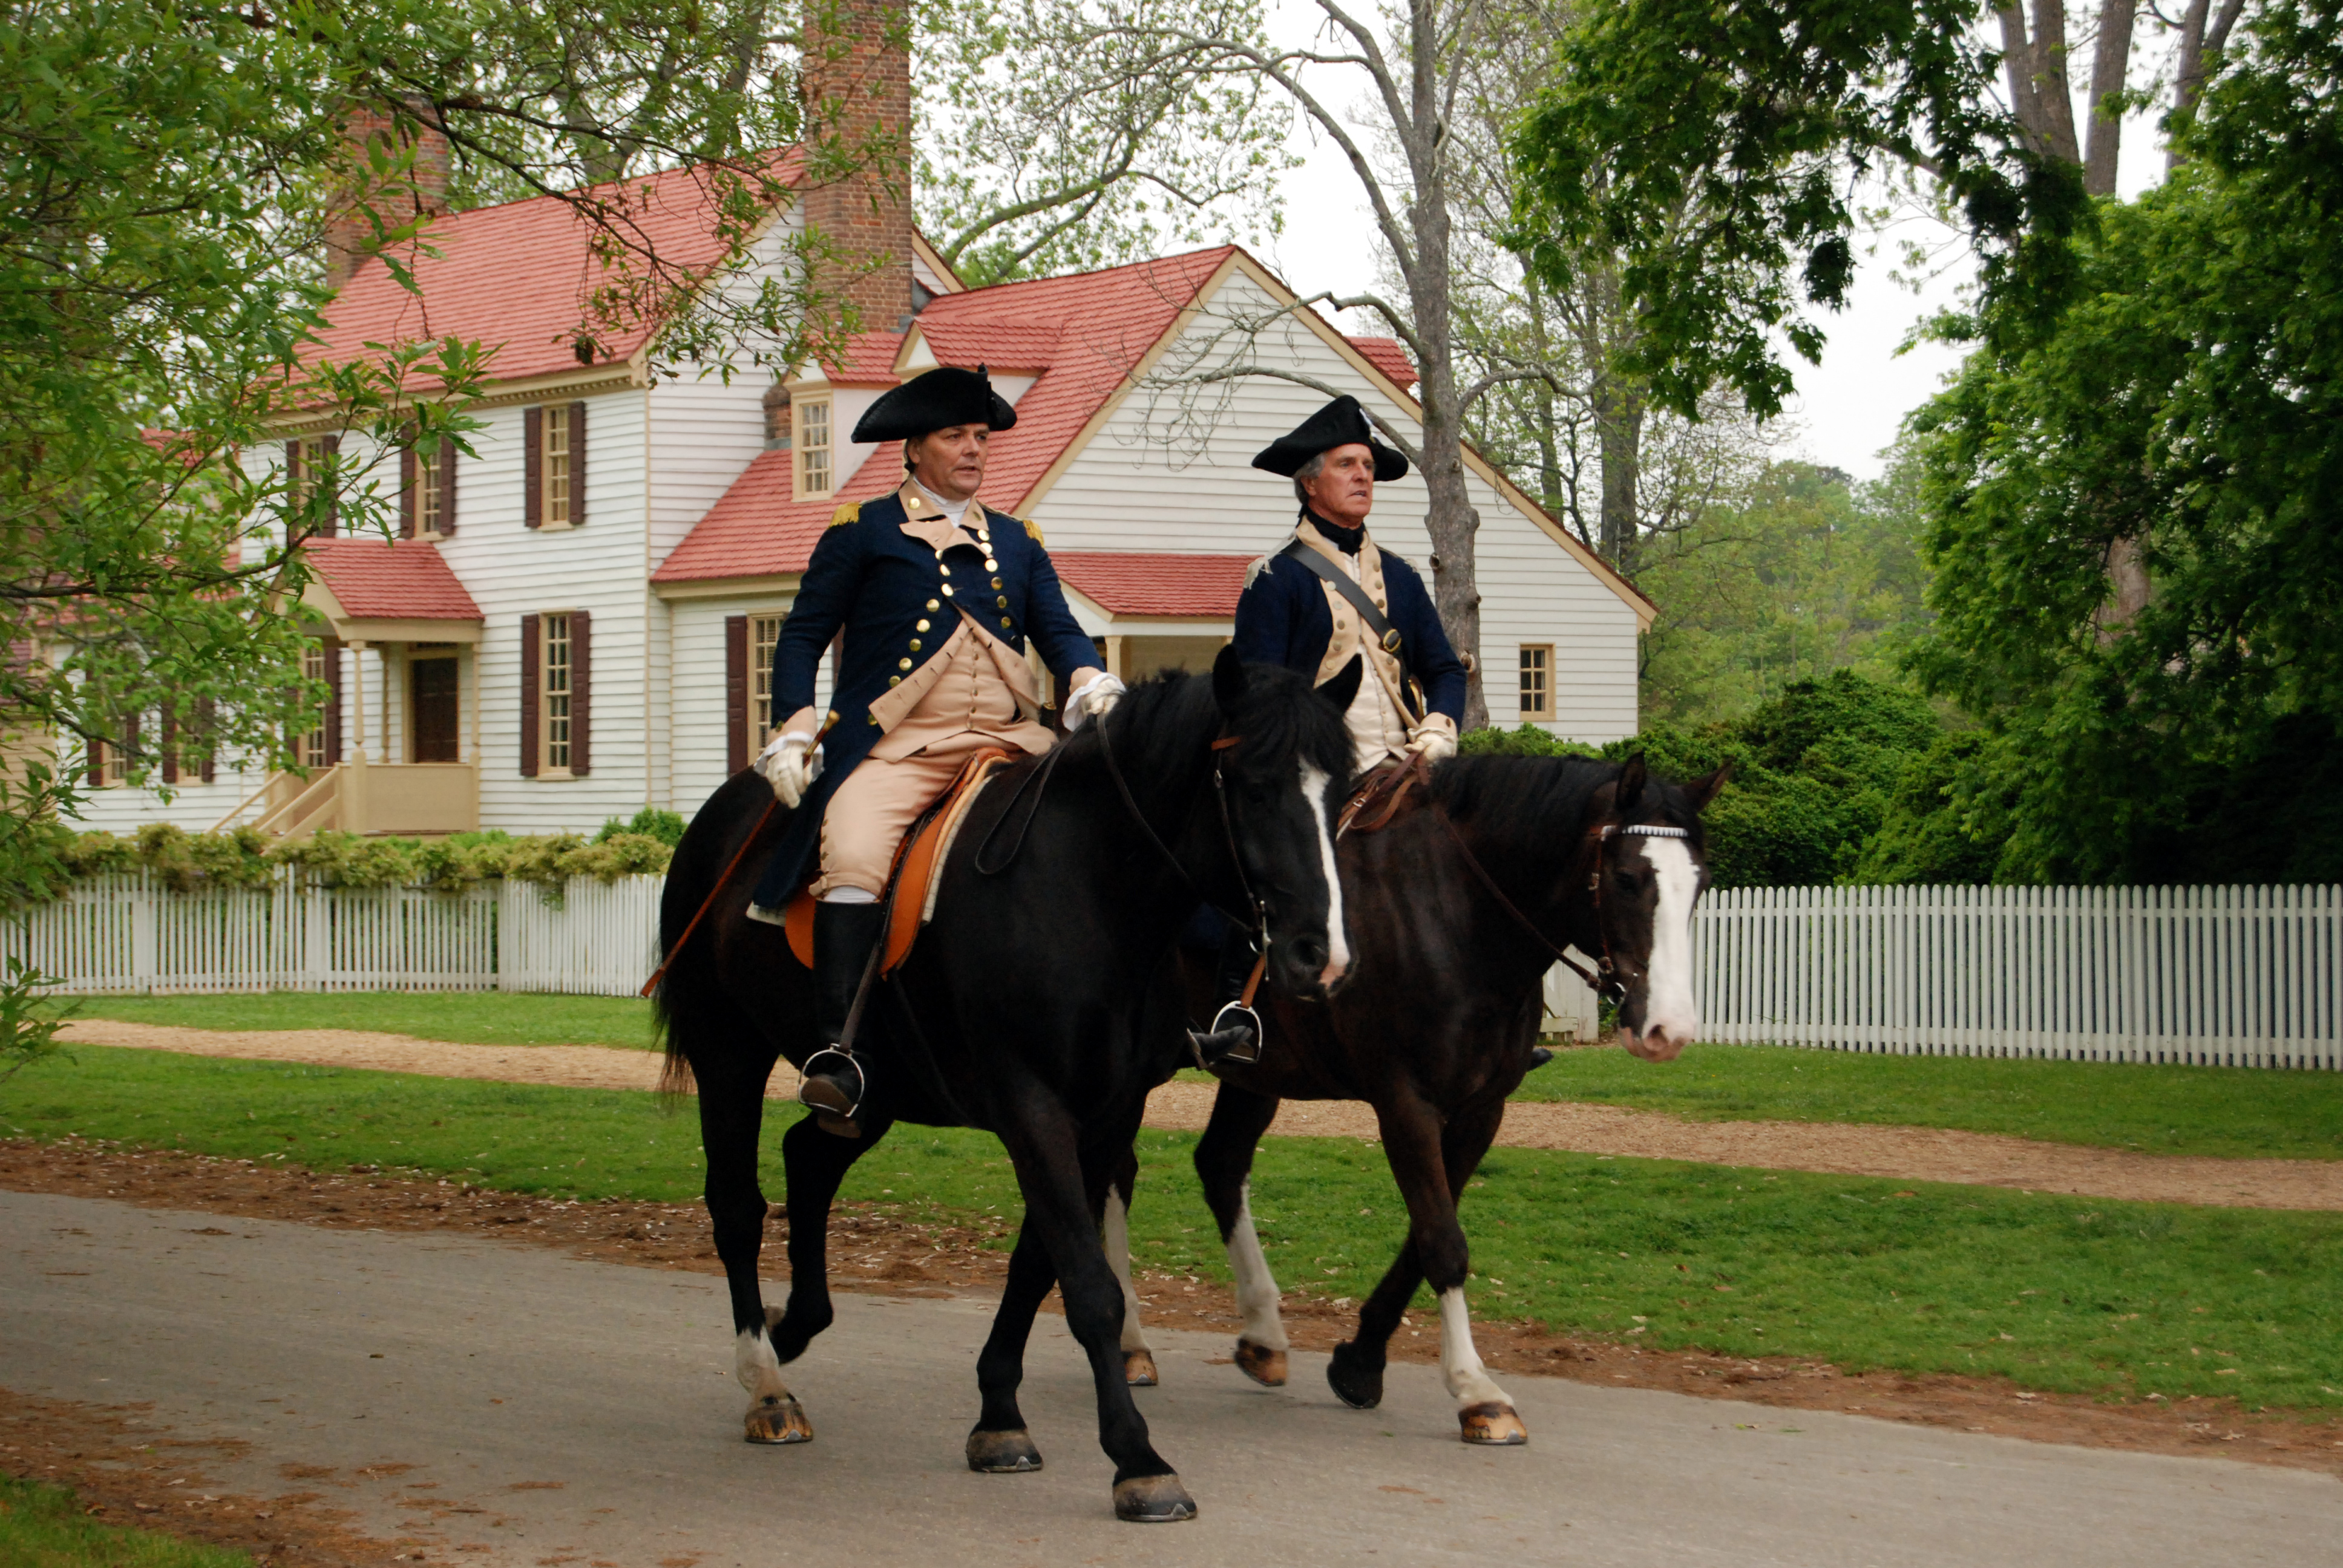 williamsburg men Find great deals on ebay for colonial williamsburg clothing and colonial williamsburg dress shop with confidence.